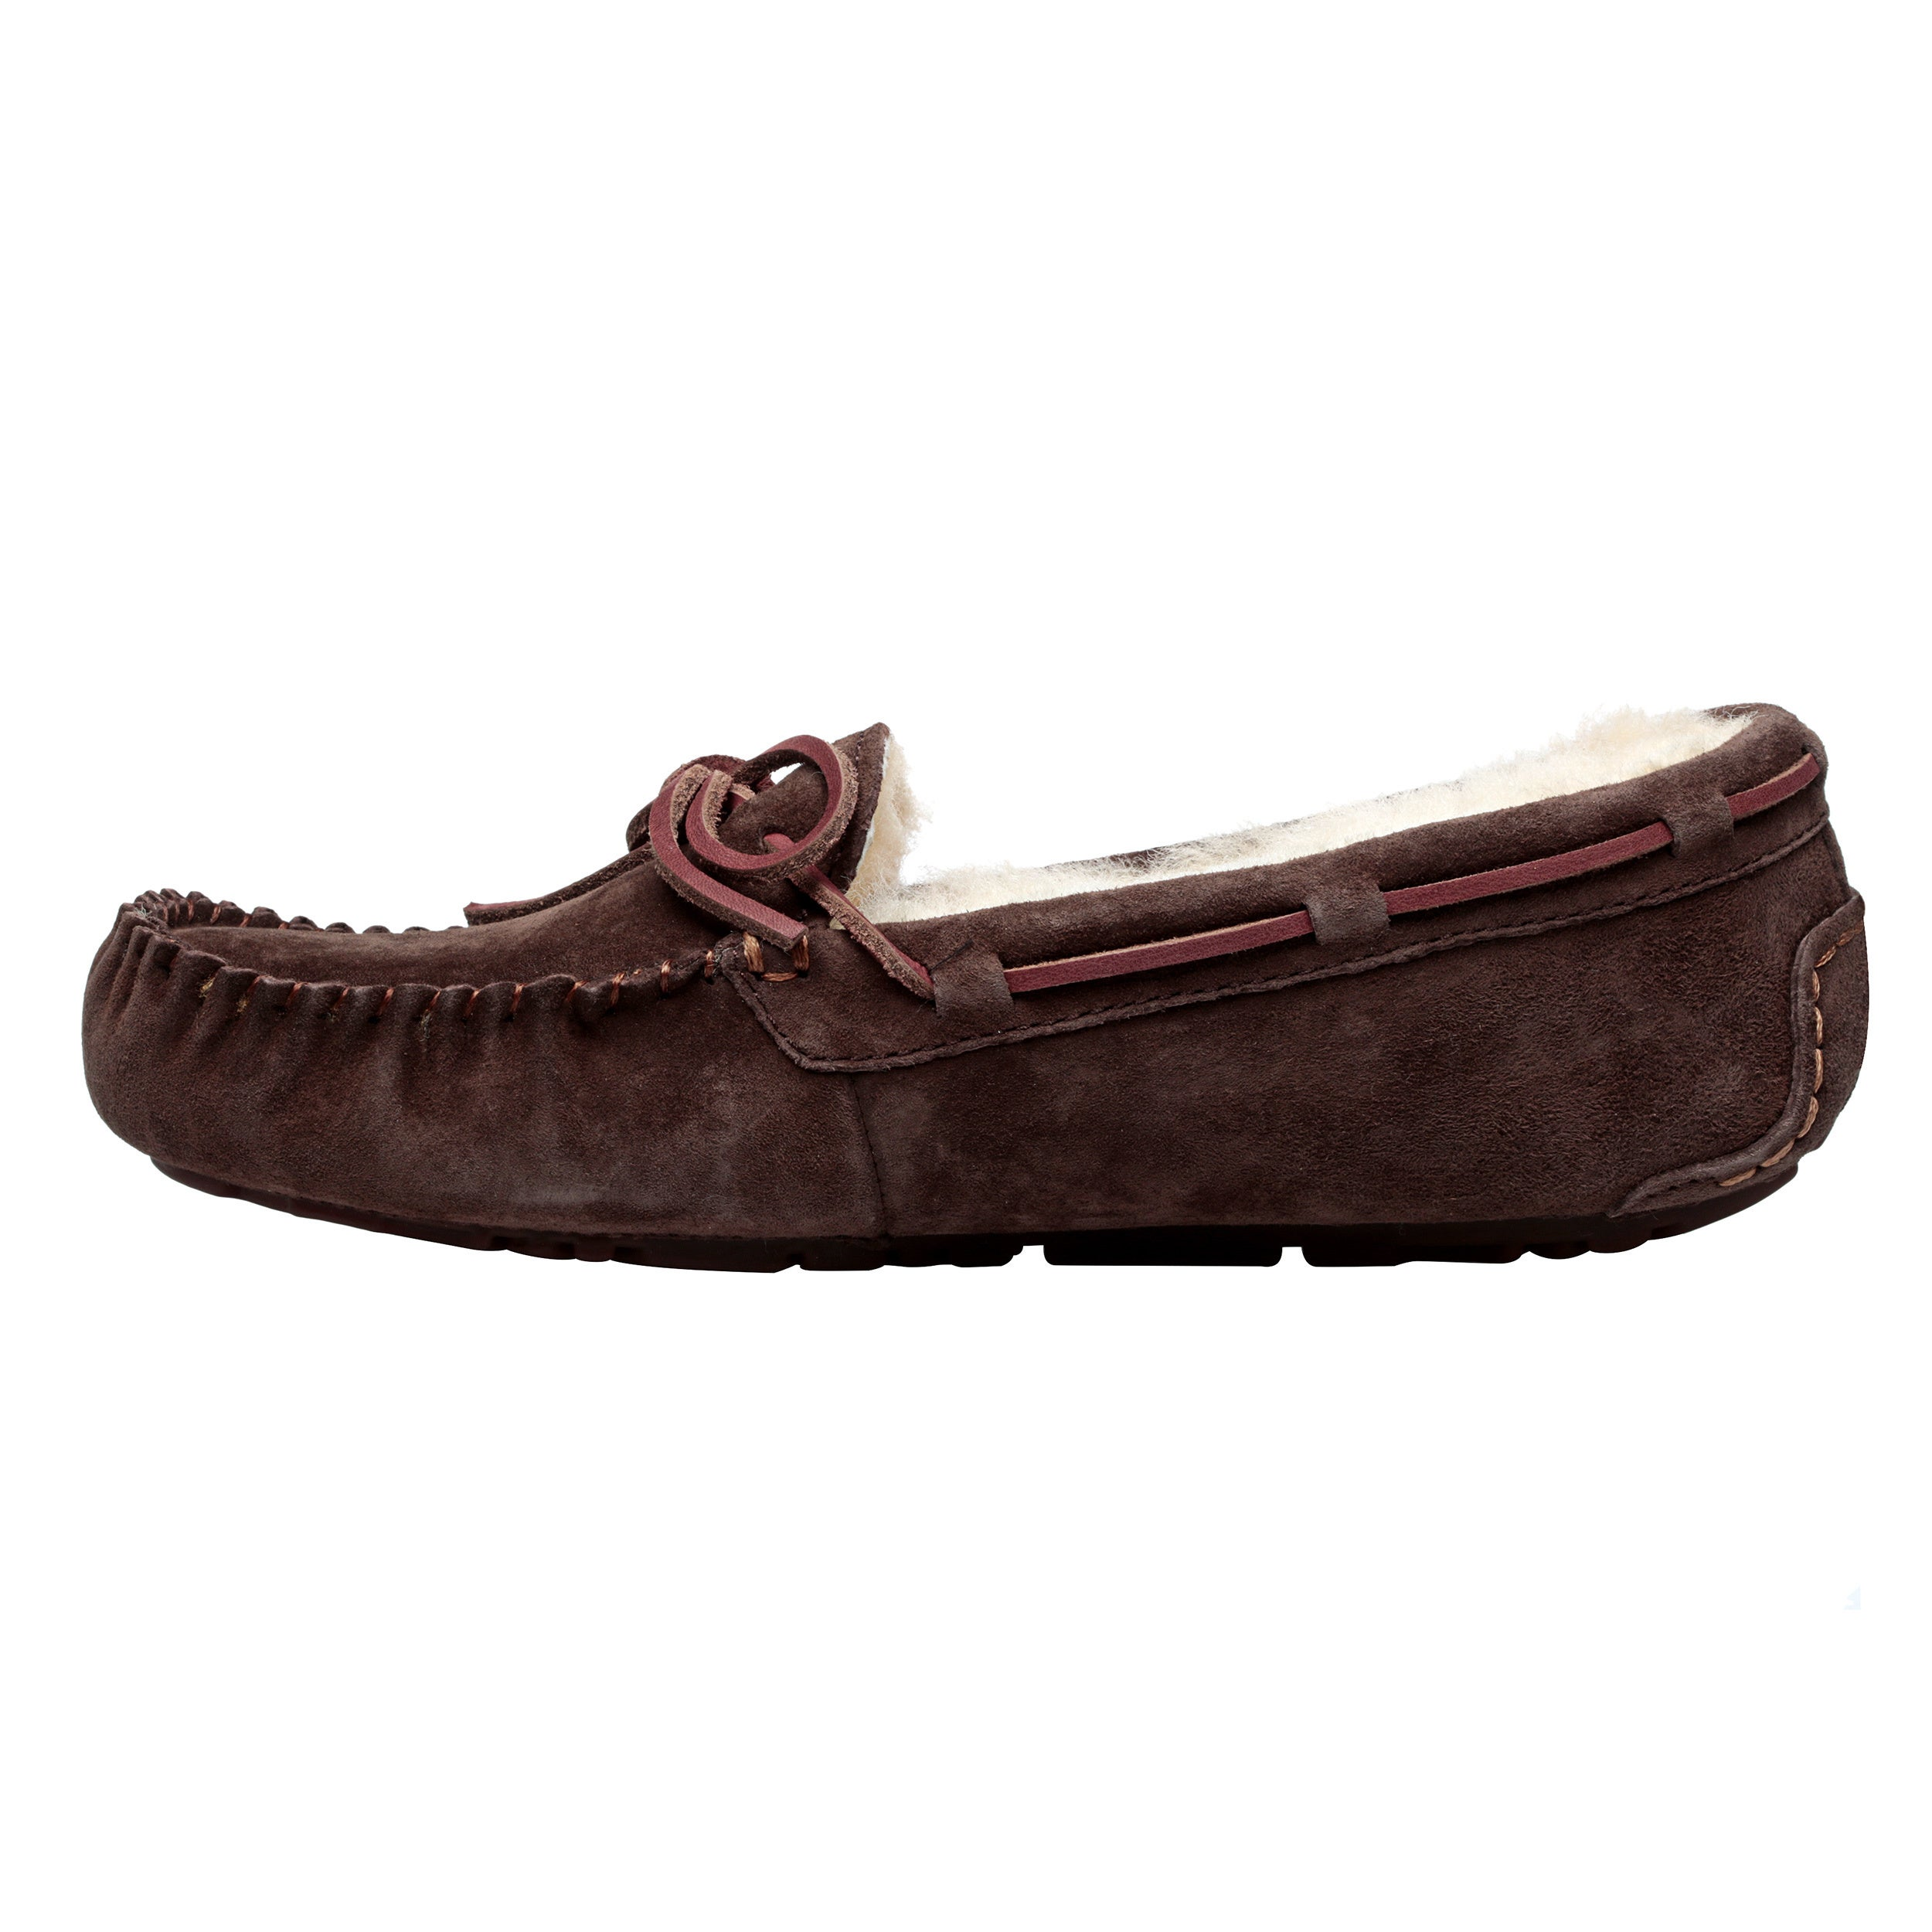 d2bfc453506 Ugg Australia Women's 'Dakota' Leather Slipper Moccasins